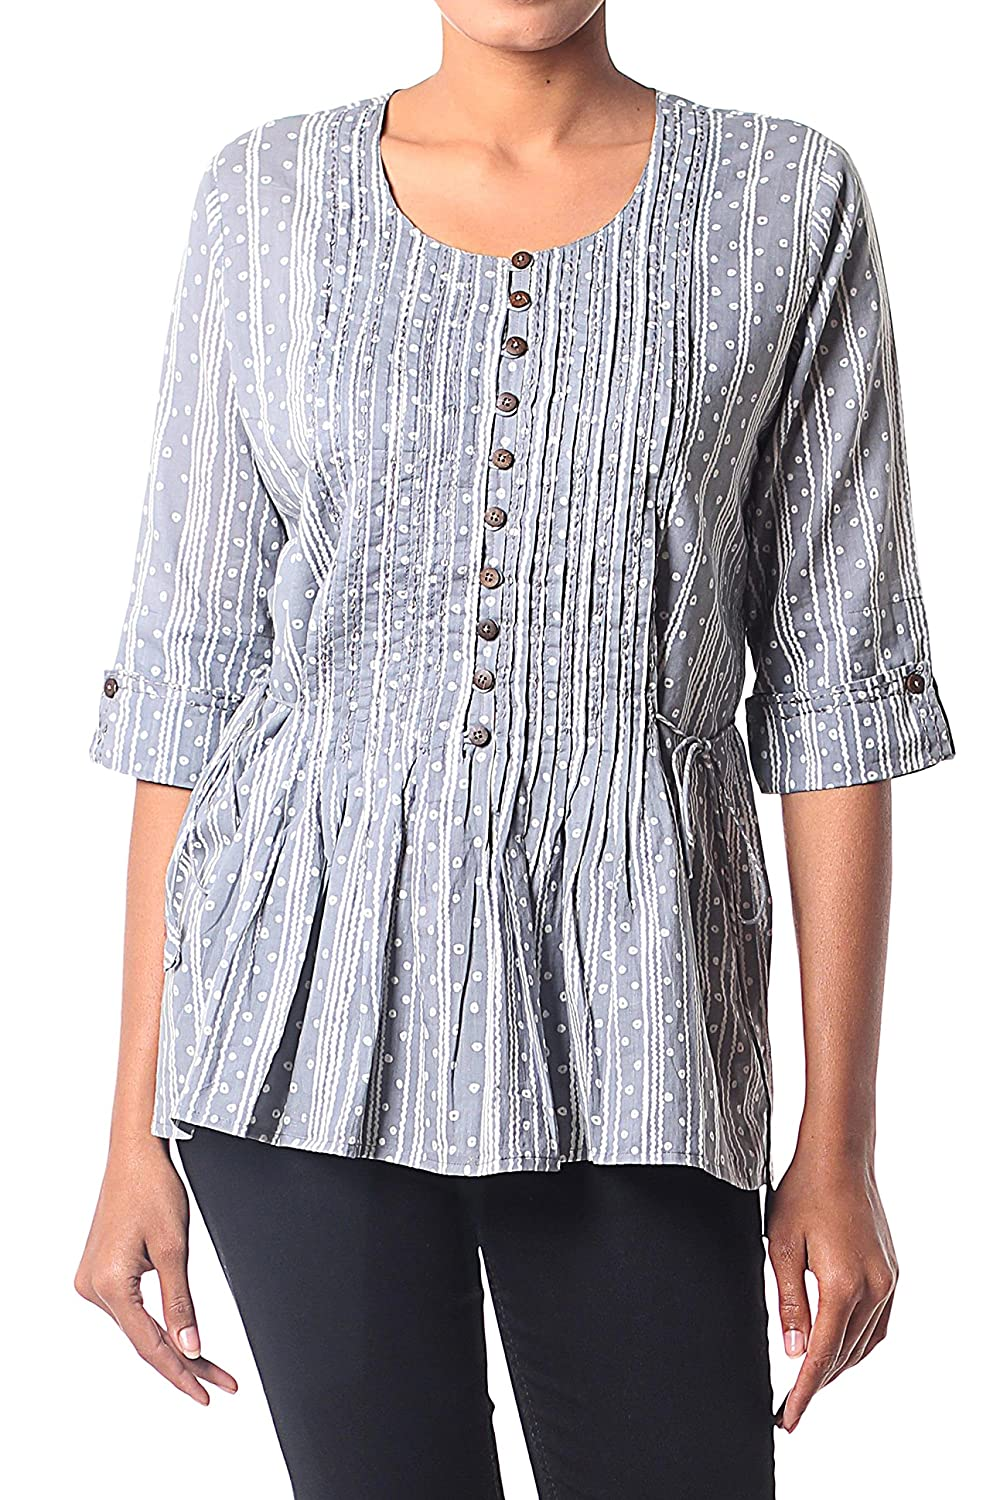 NOVICA Grey and White Cotton Blouse, 'Dancing Bubbles in Grey'